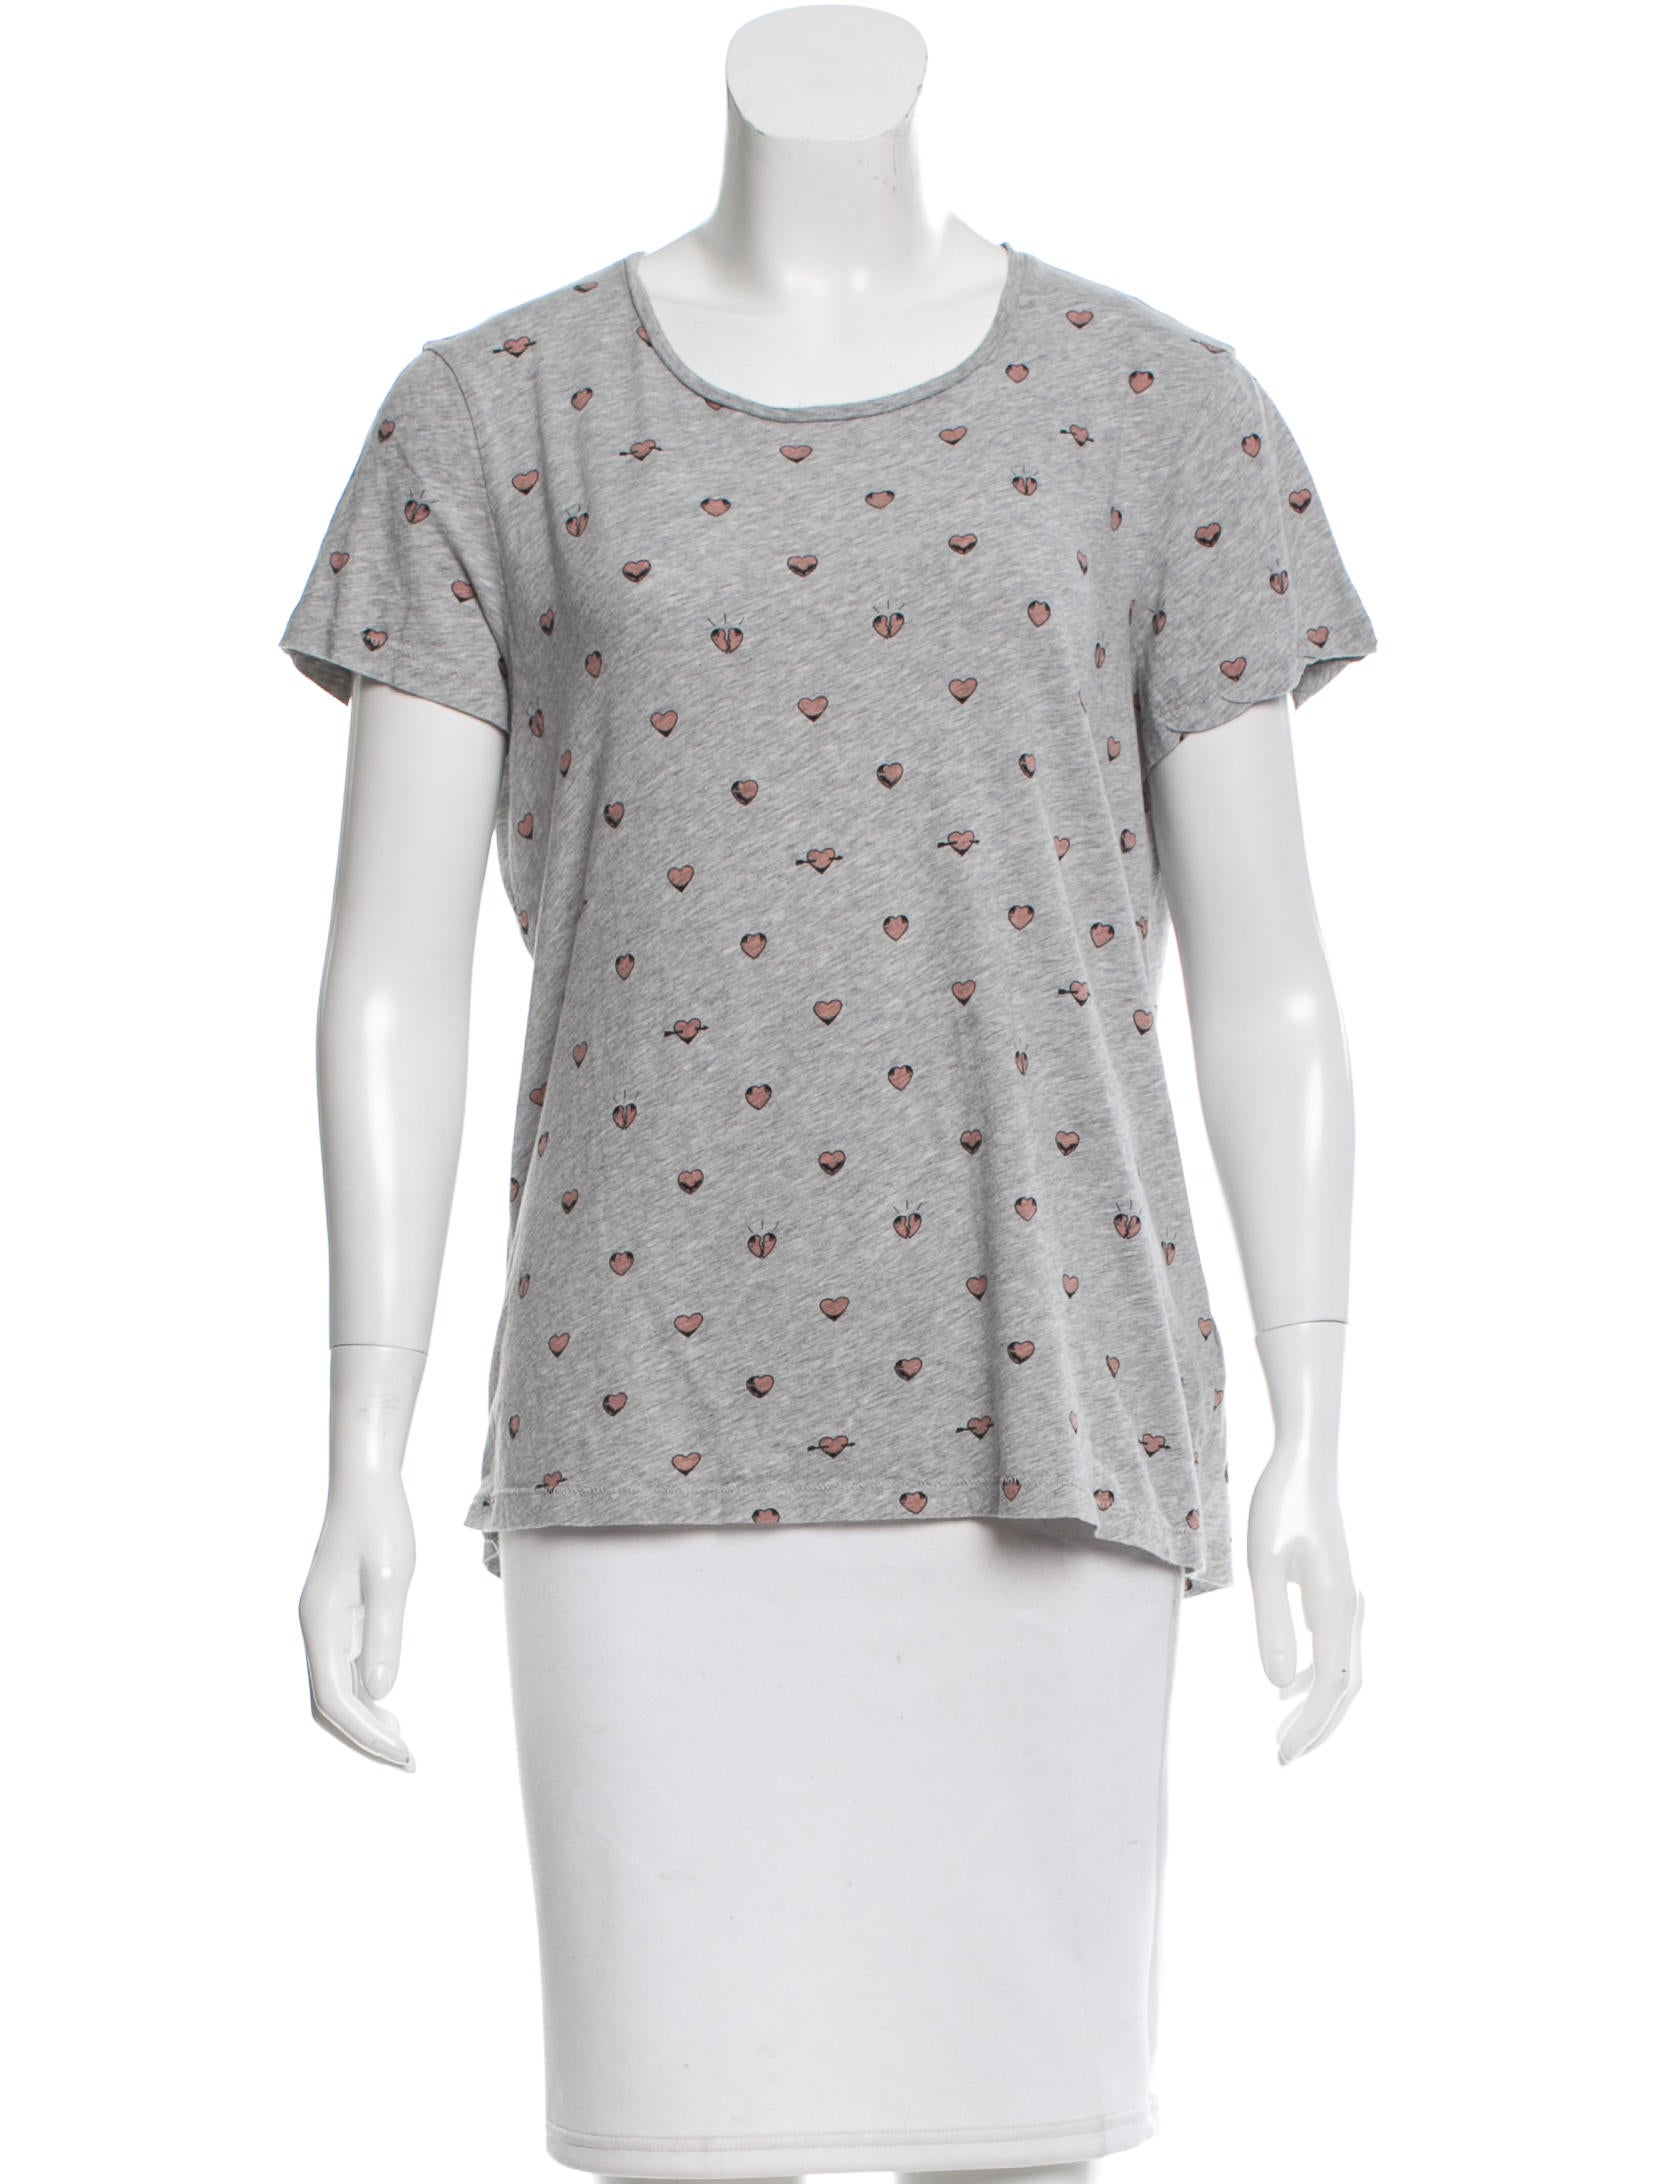 Acne Heart Print T Shirt Clothing Acn28272 The Realreal